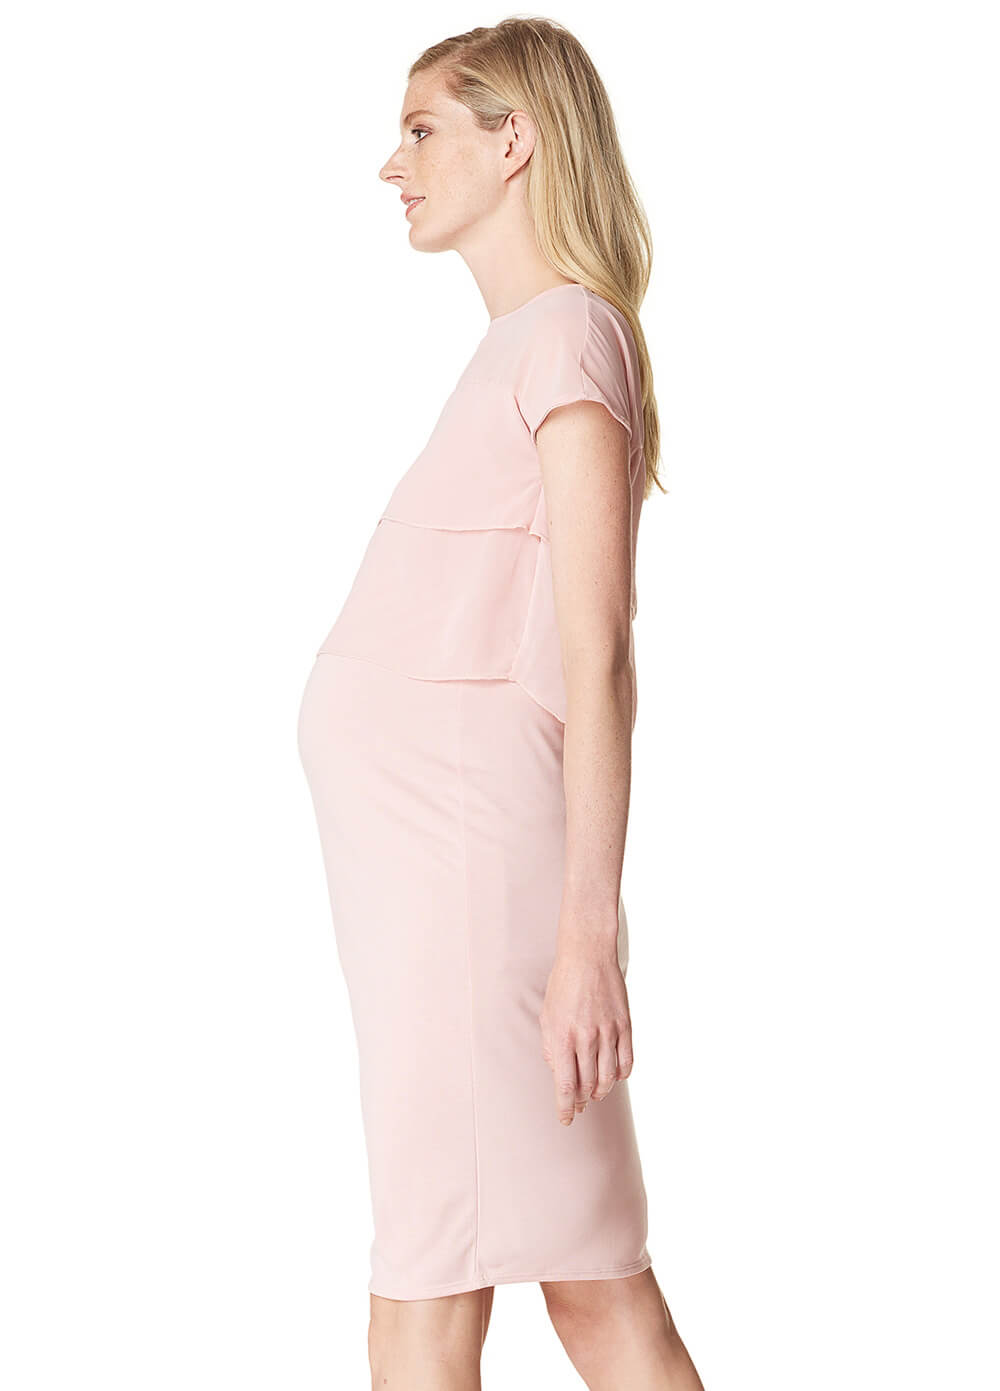 Daisy Maternity & Nursing Dress in Blush by Noppies